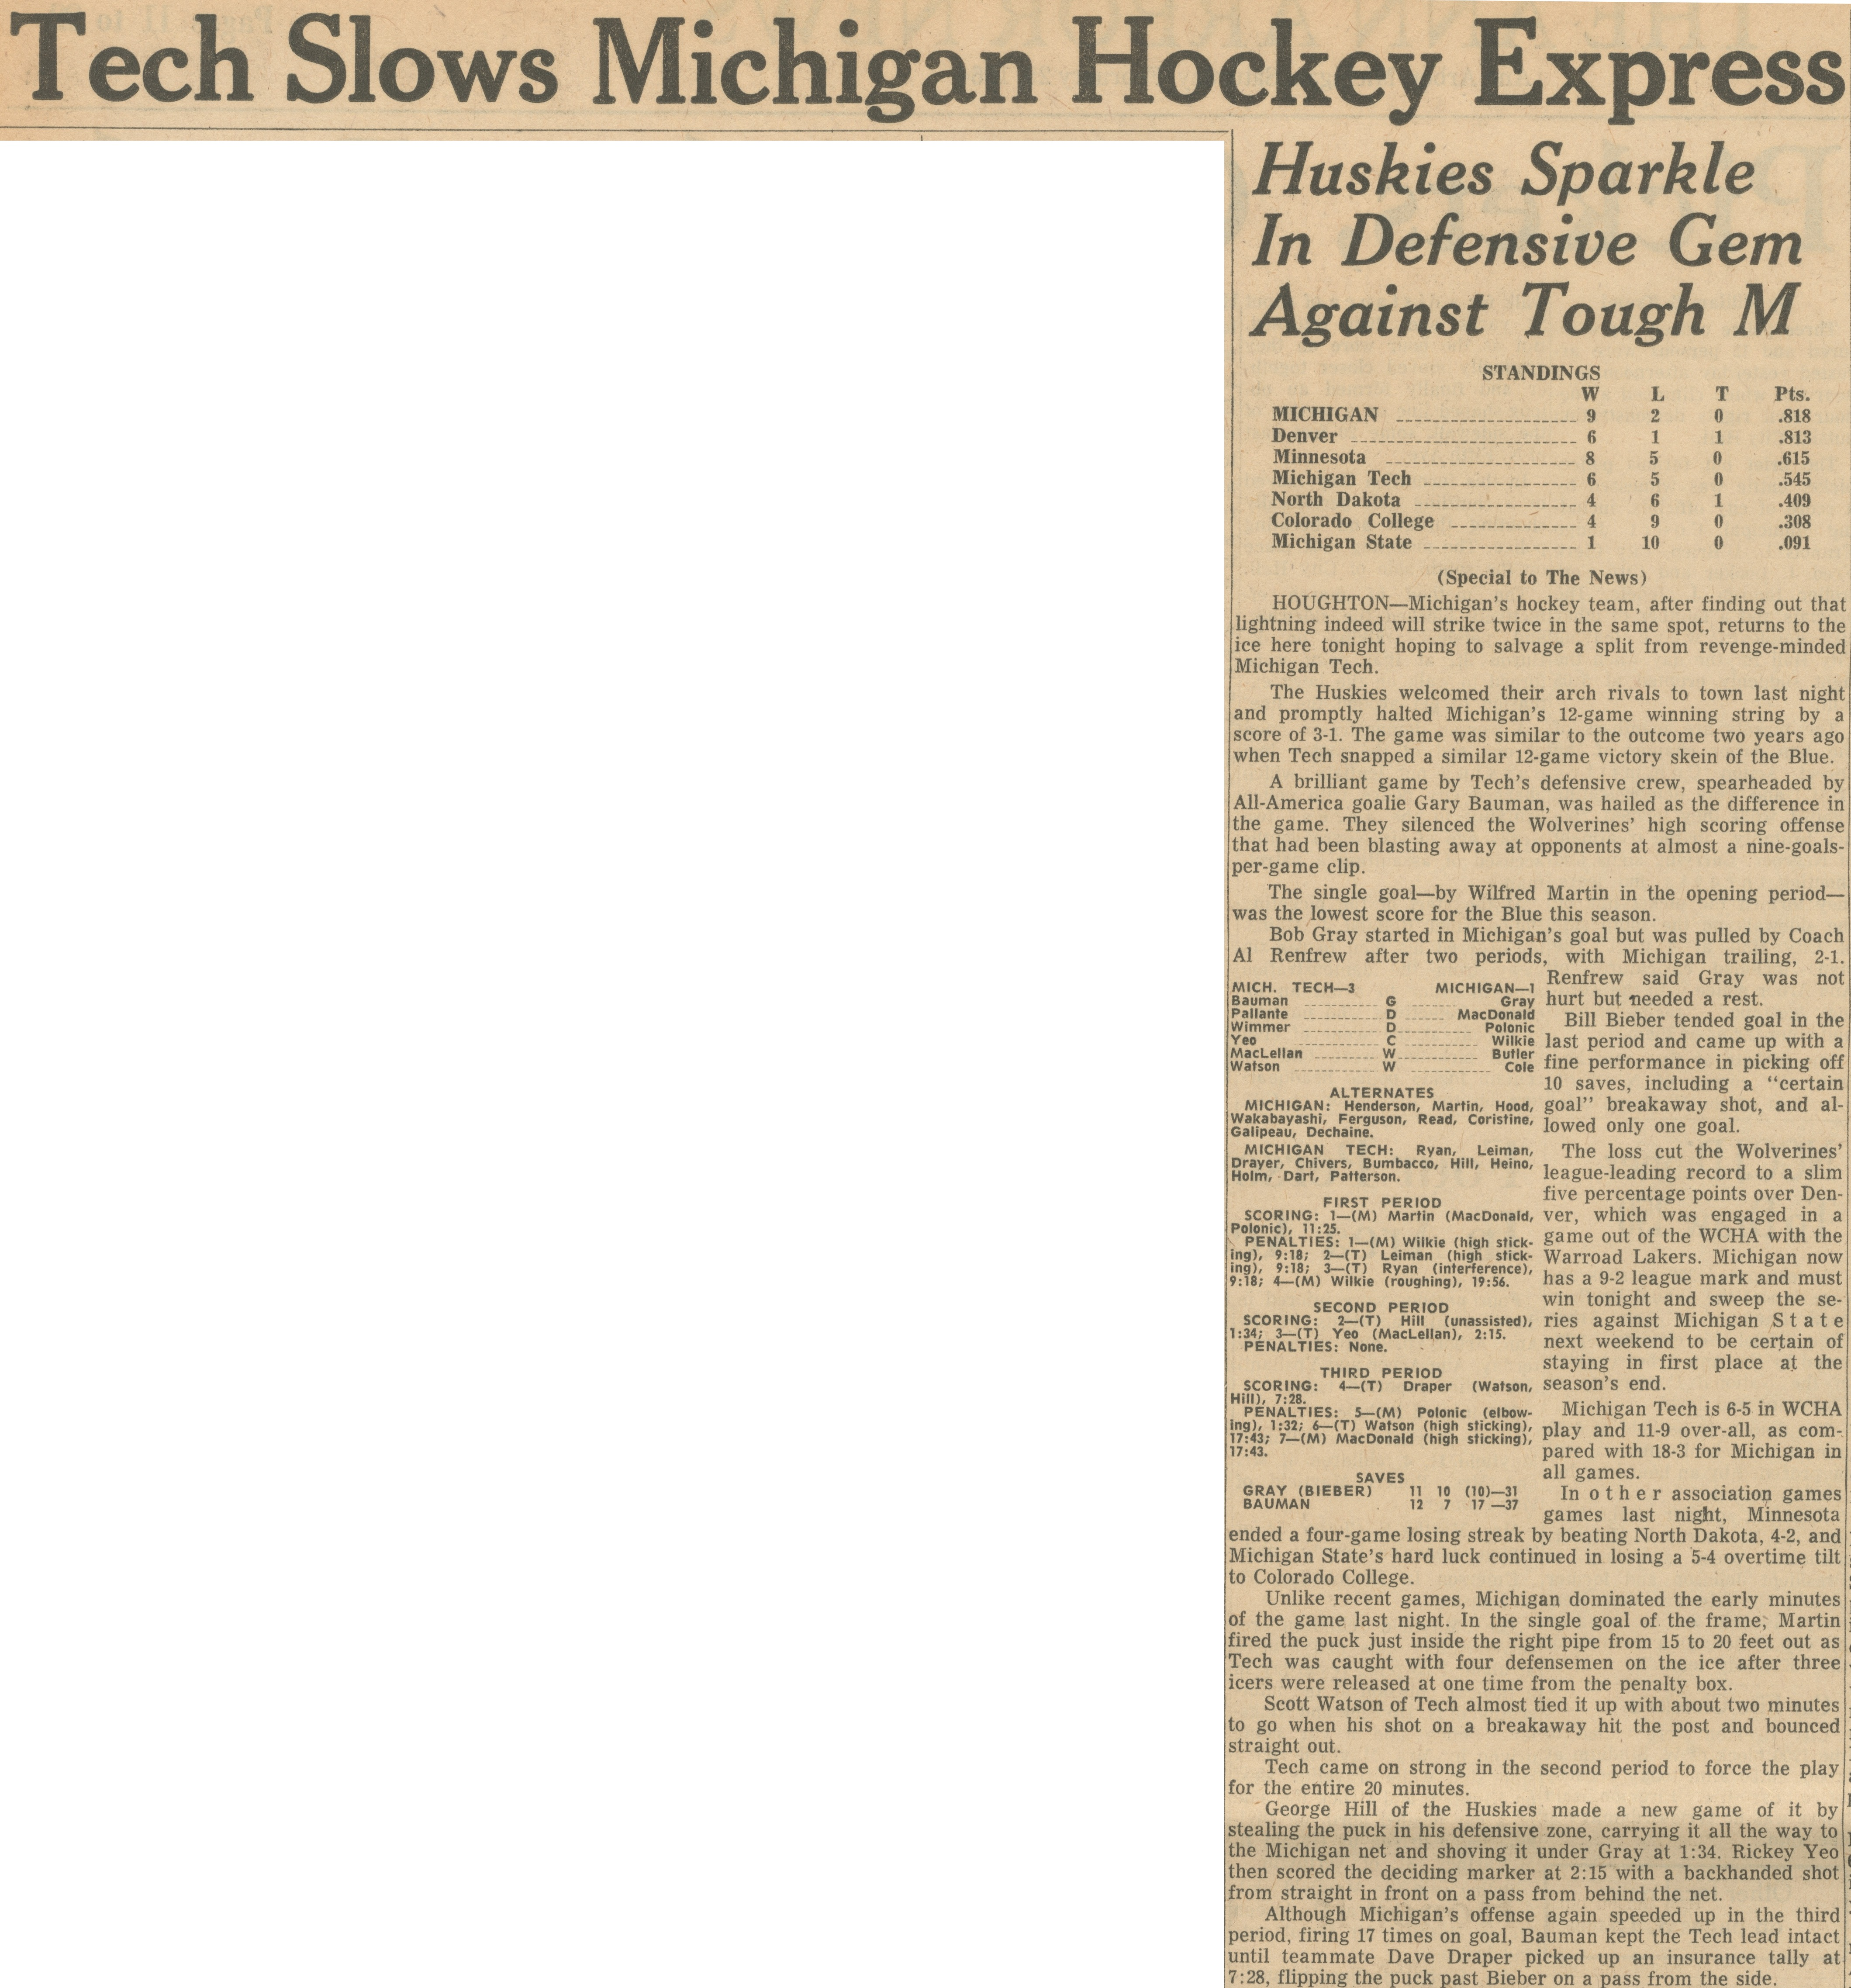 Tech Slow Michigan Hockey Express image